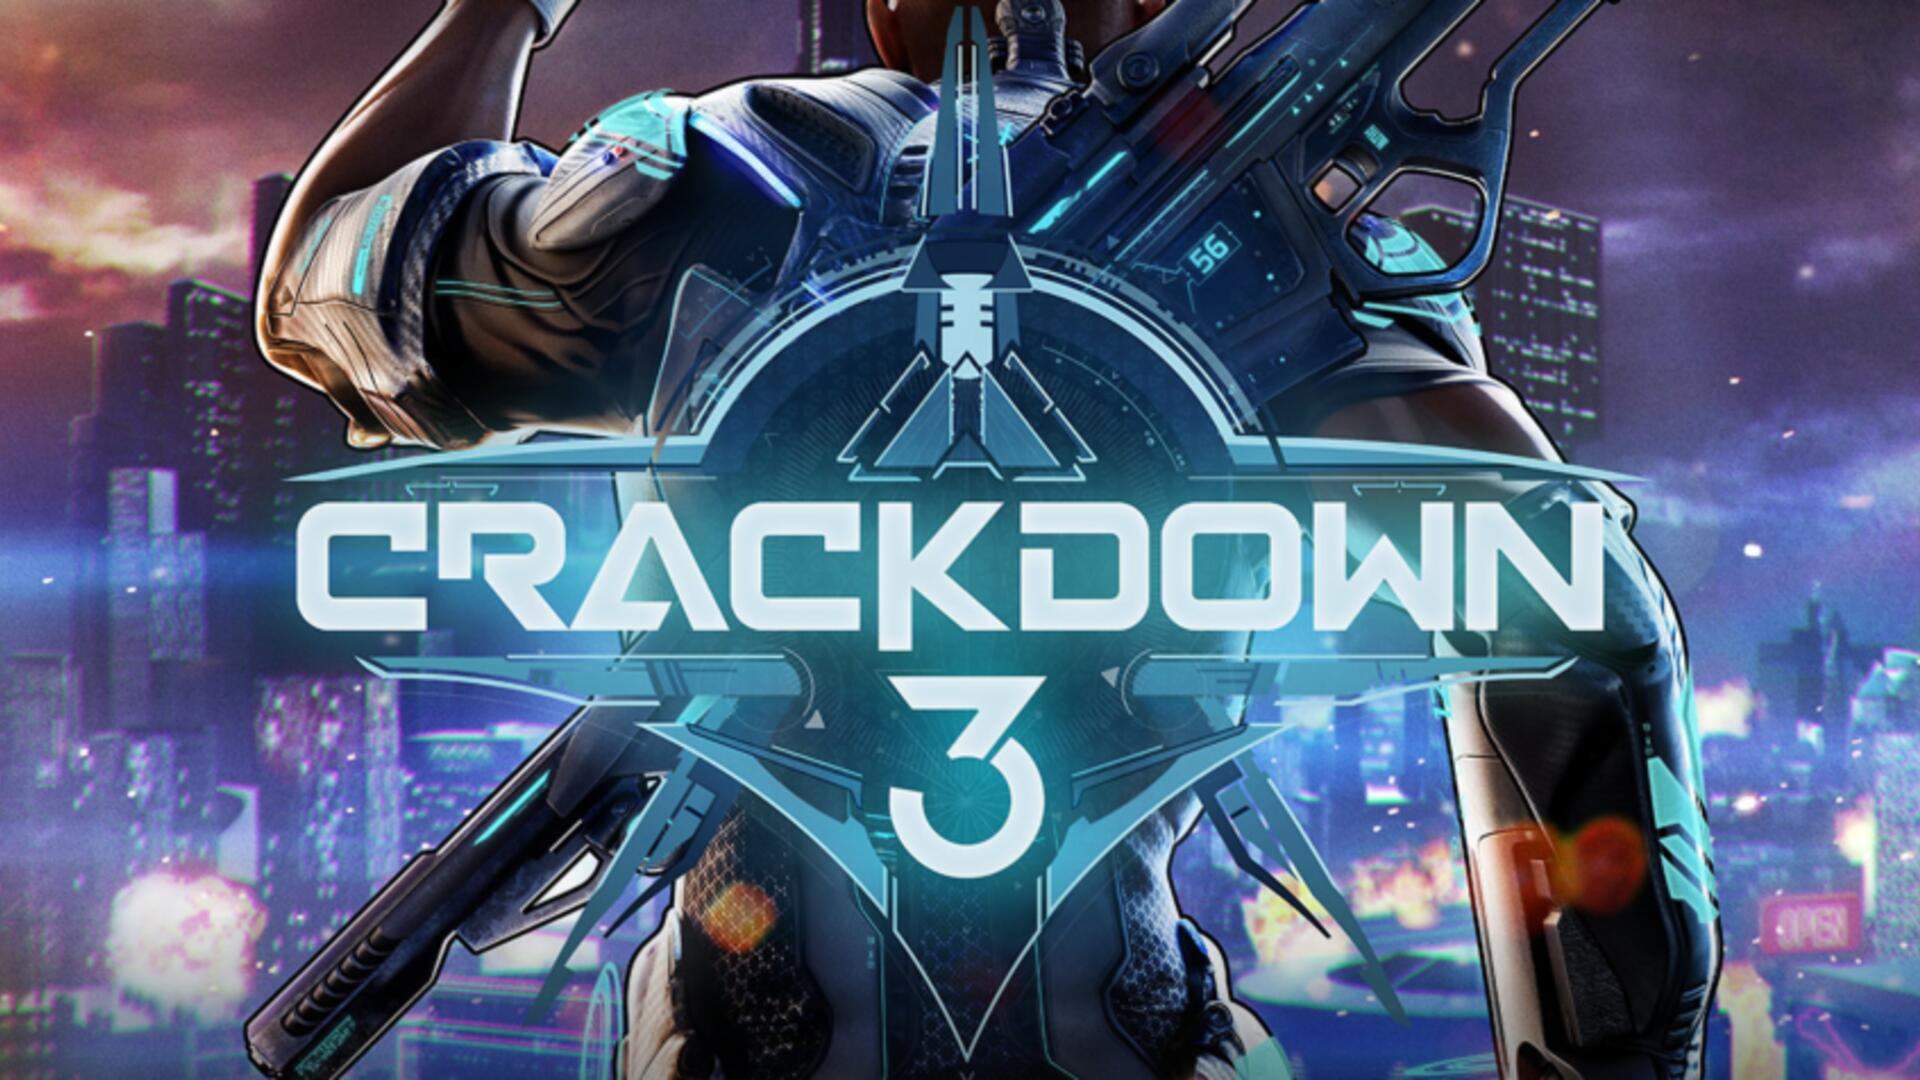 Crackdown 3 Release Date Announced for February 2019